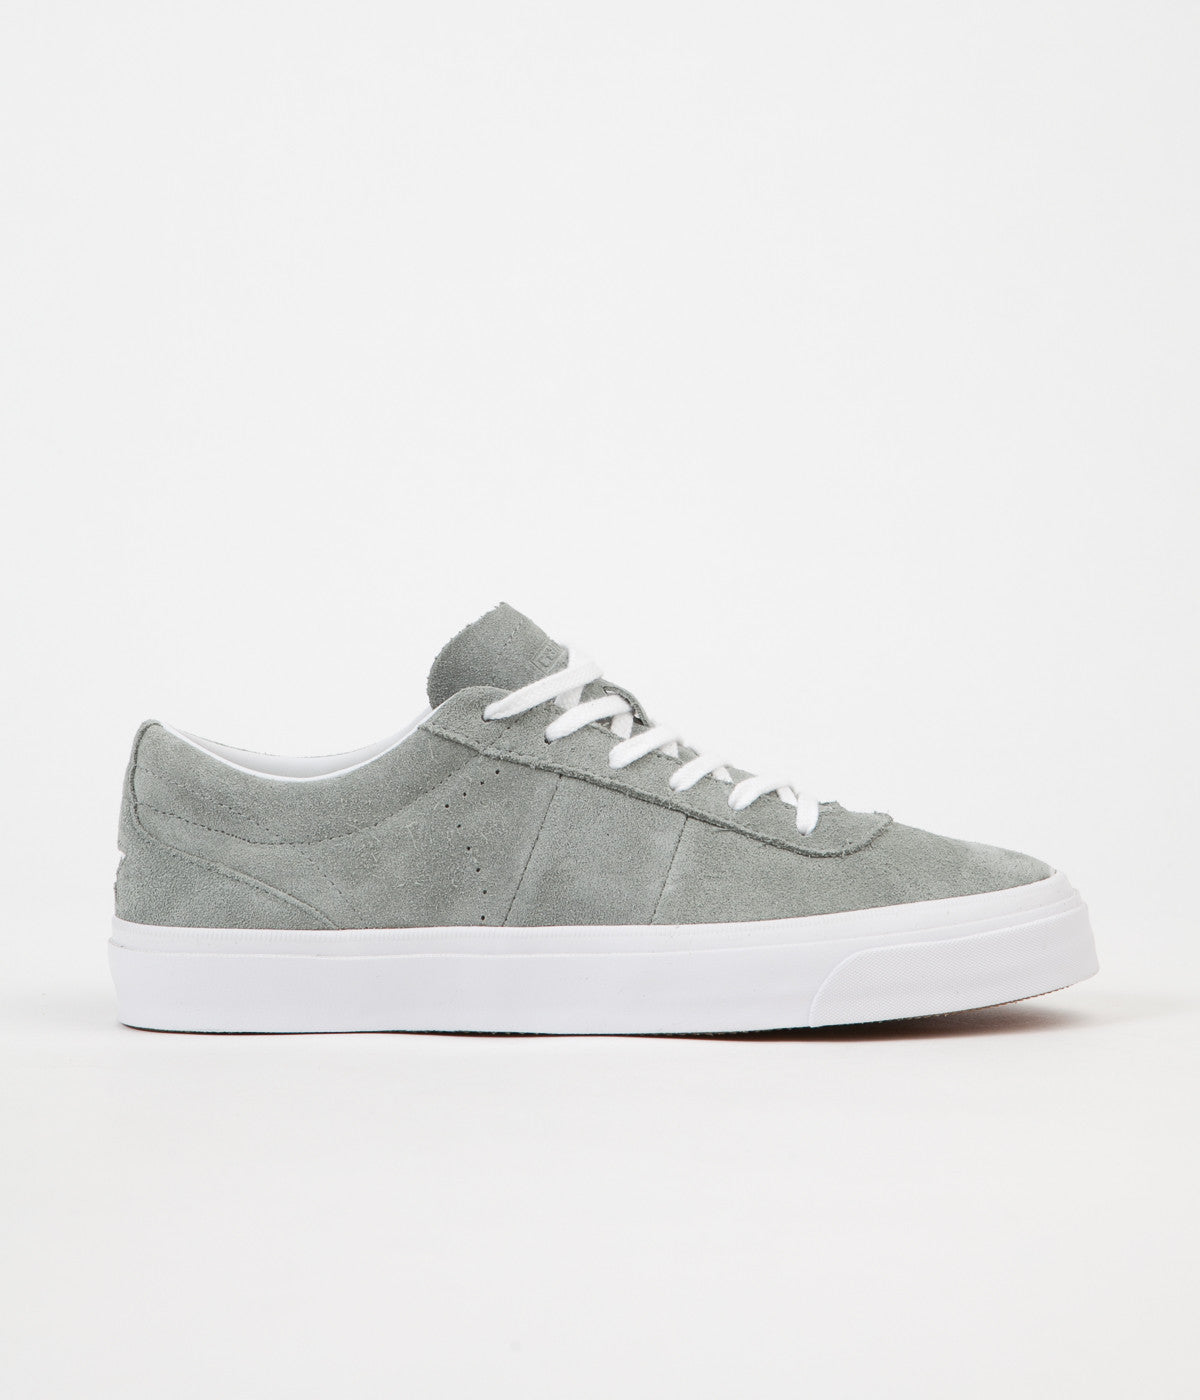 Converse One Star CC Ox Shoes - Camo Green / White / White